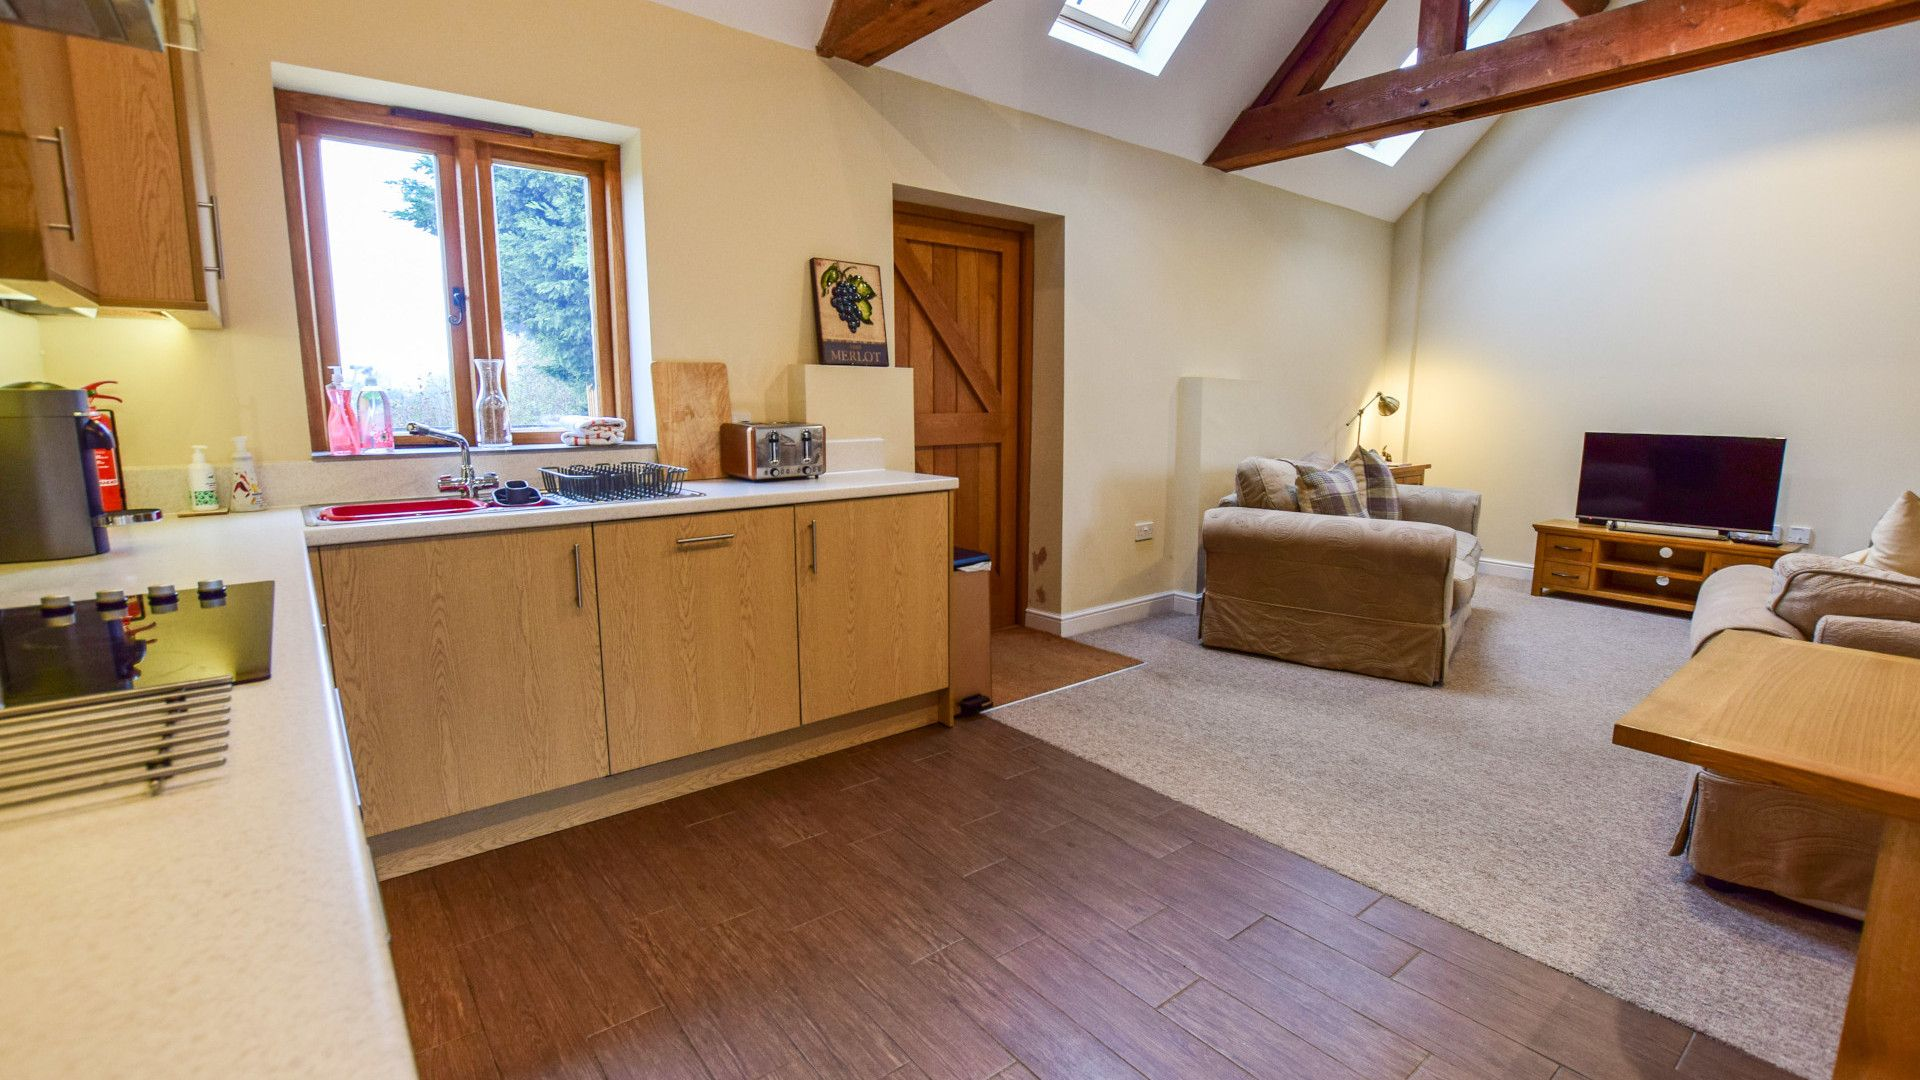 Open plan kitchen, dining area and living room, Combine Shed, Bolthole Retreats